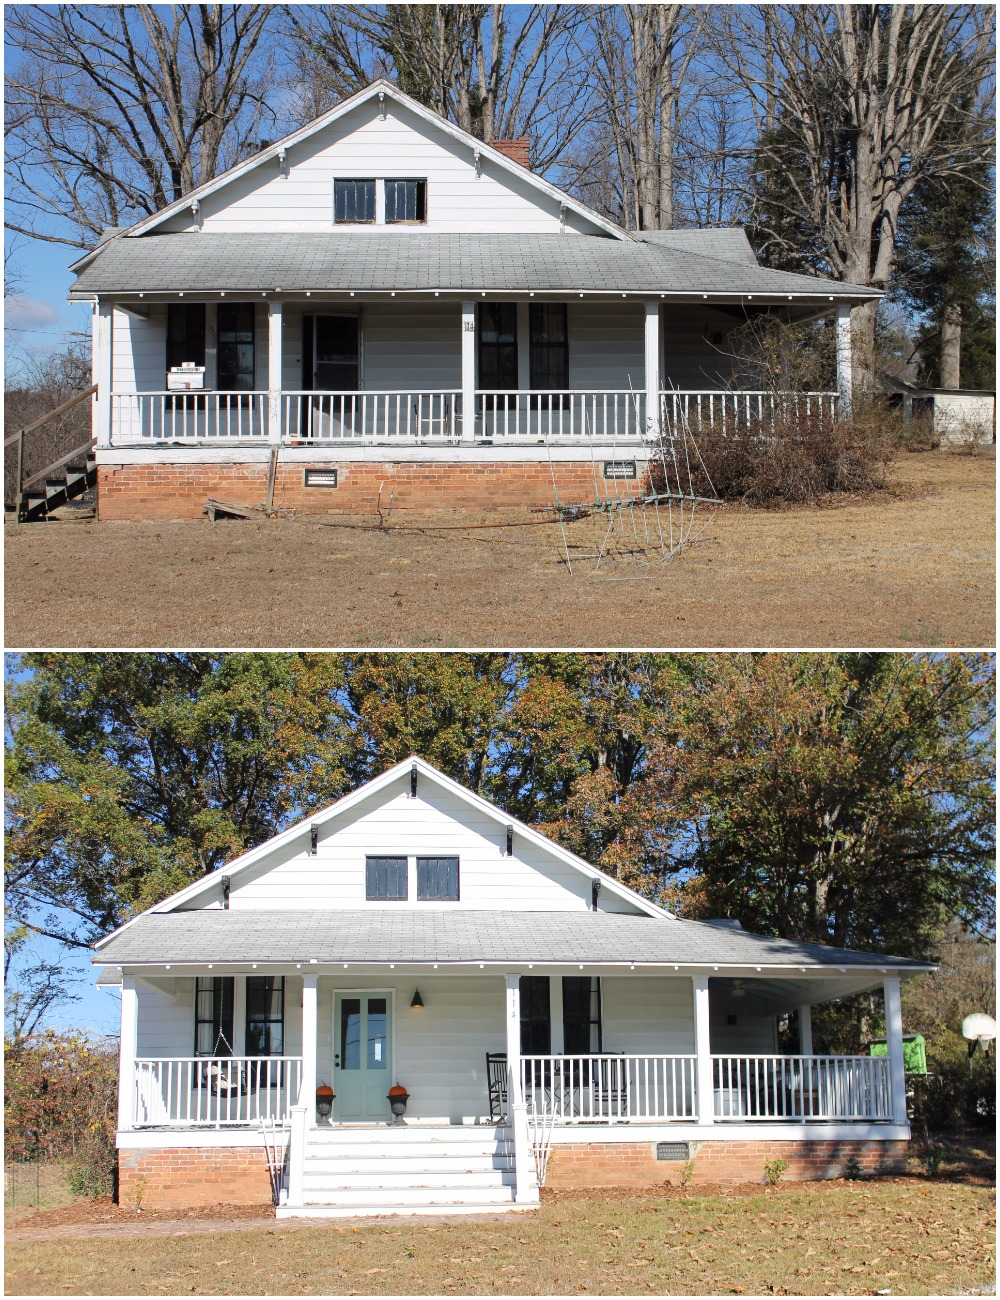 Elizabeth Burns Design  Budget-Friendly Fixer Upper Farmhouse Before and After House Flip - DIY Curb Appeal White Farm House Cottage with Black Windows and Wide Front Steps to Front Porch - Wythe Blue  (5).jpg